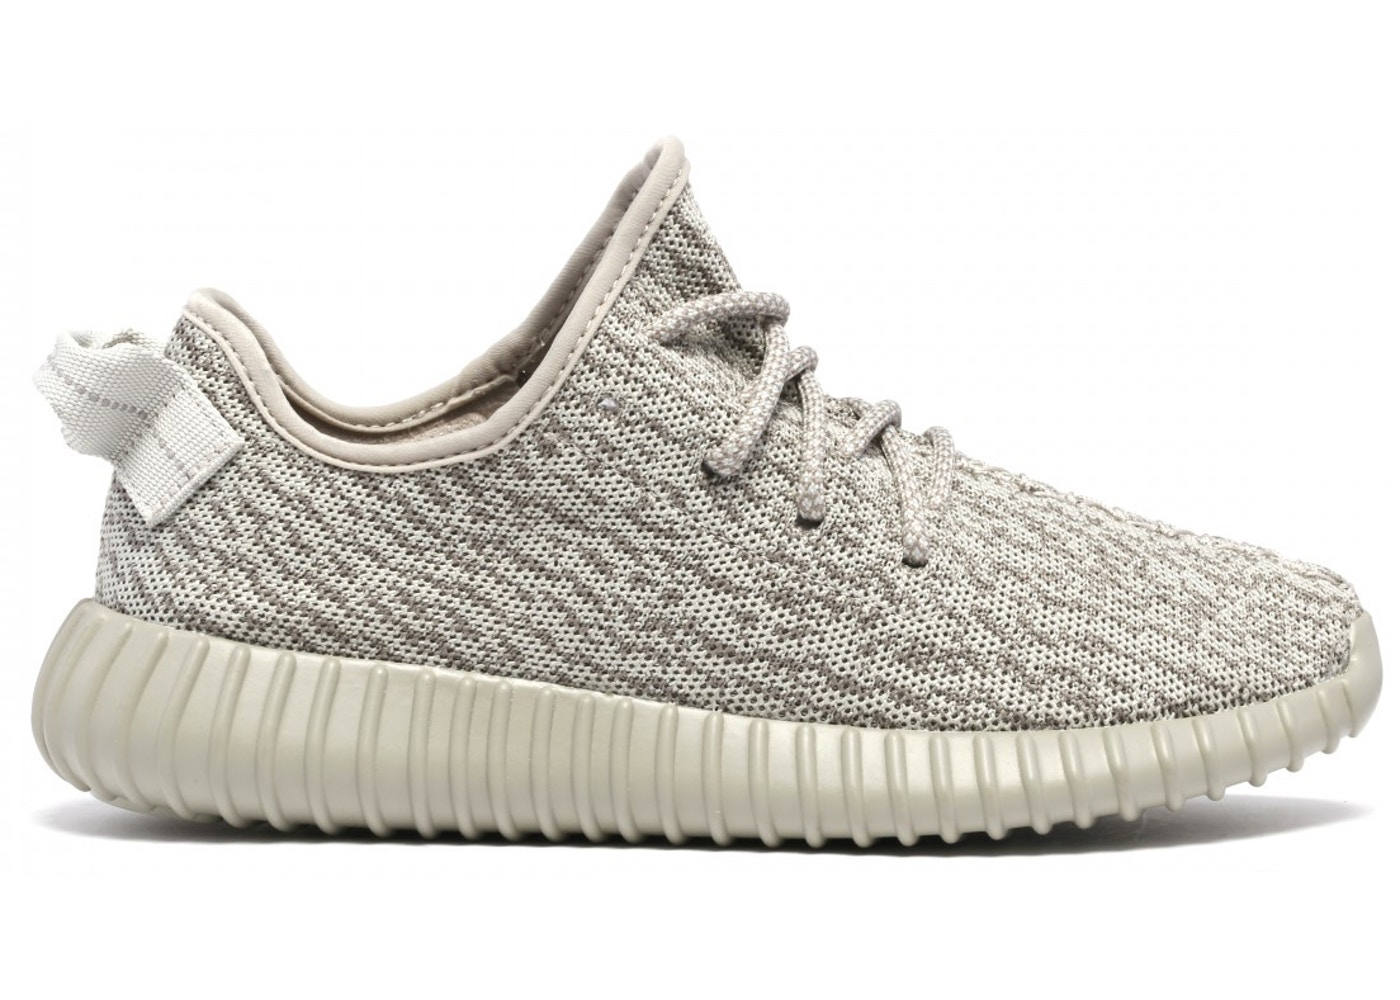 reputable site 3ca54 1adf3 adidas Yeezy Boost 350 Moonrock - AQ2660